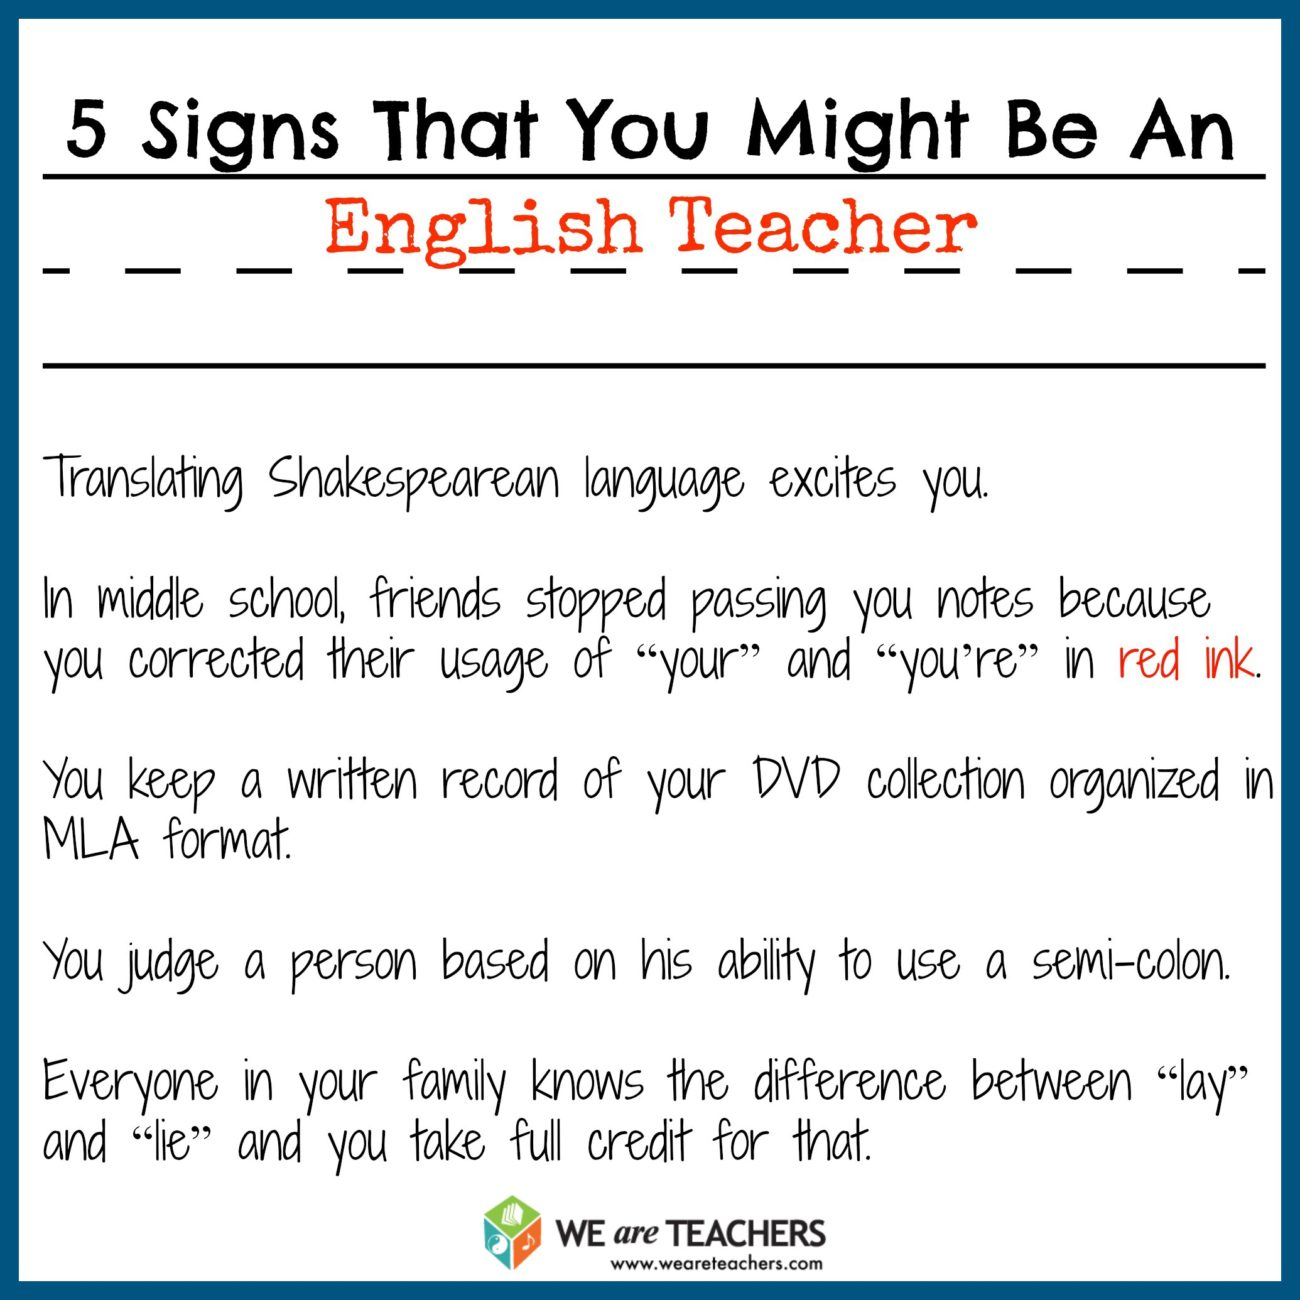 Are You an English Teacher at Heart?